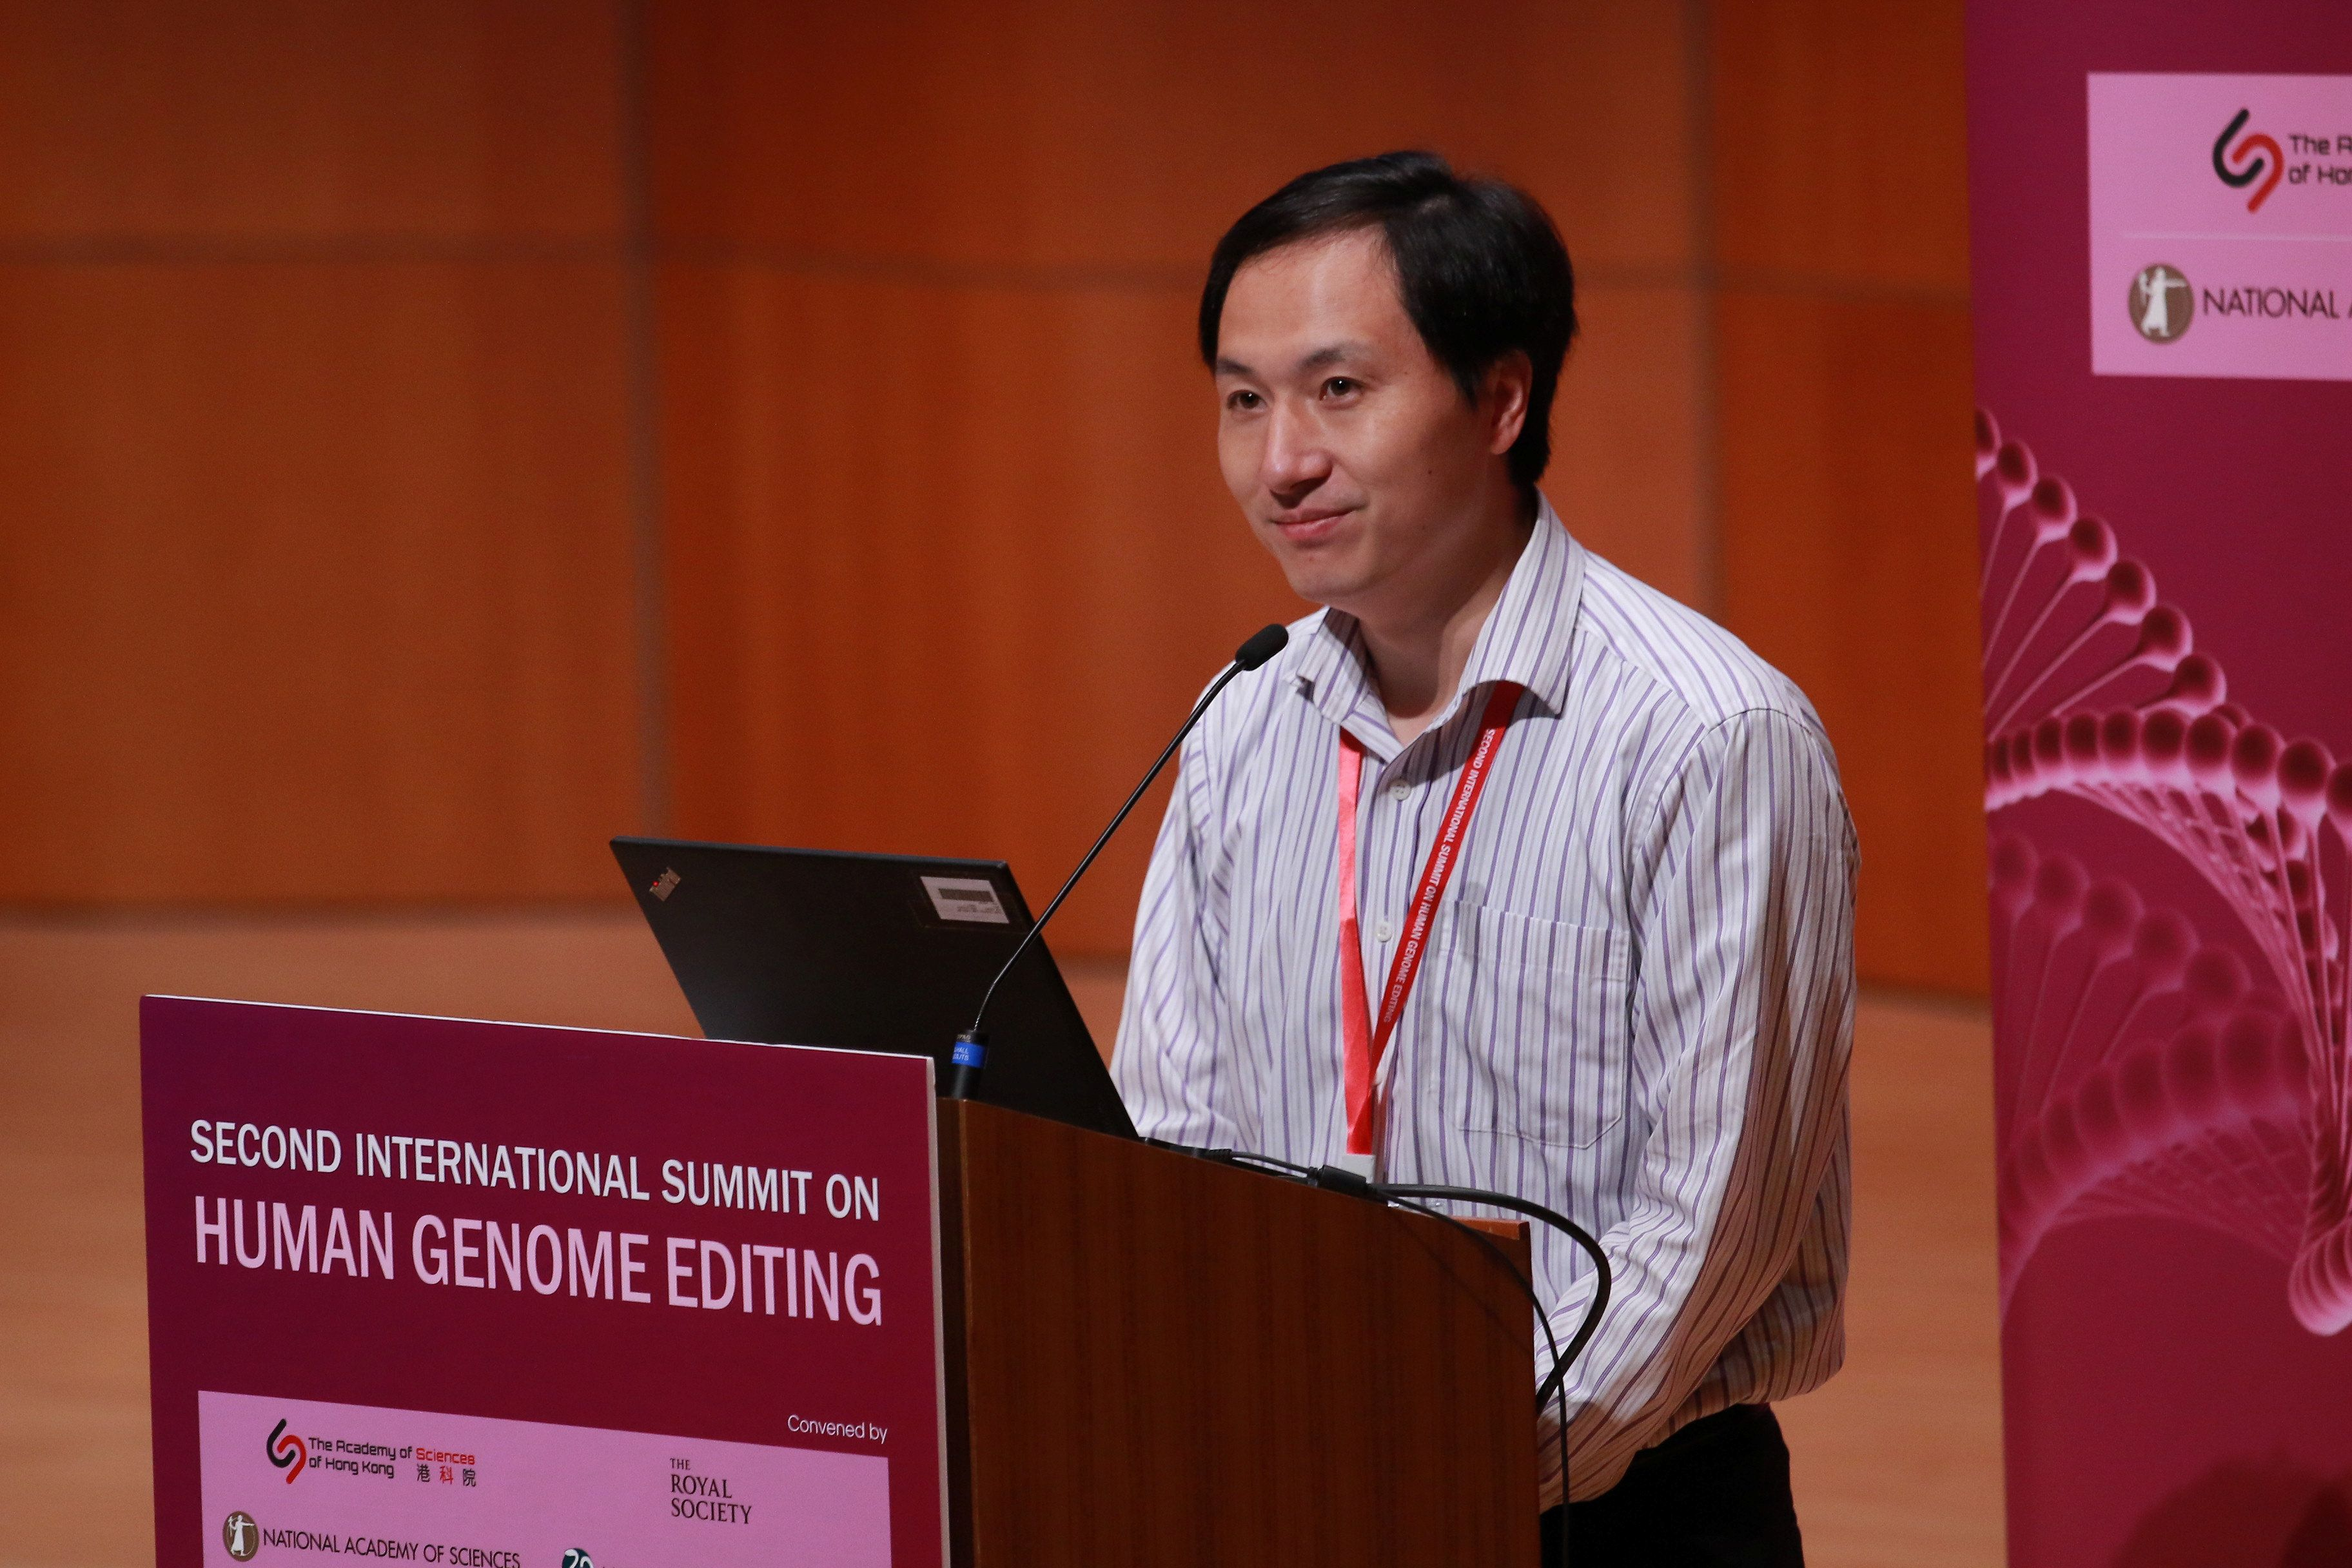 Scientist He Jiankui attends the International Summit on Human Genome Editing at the University of Hong Kong in Hong Kong, China November 28, 2018. REUTERS/Stringer  ATTENTION EDITORS - THIS IMAGE WAS PROVIDED BY A THIRD PARTY. CHINA OUT.